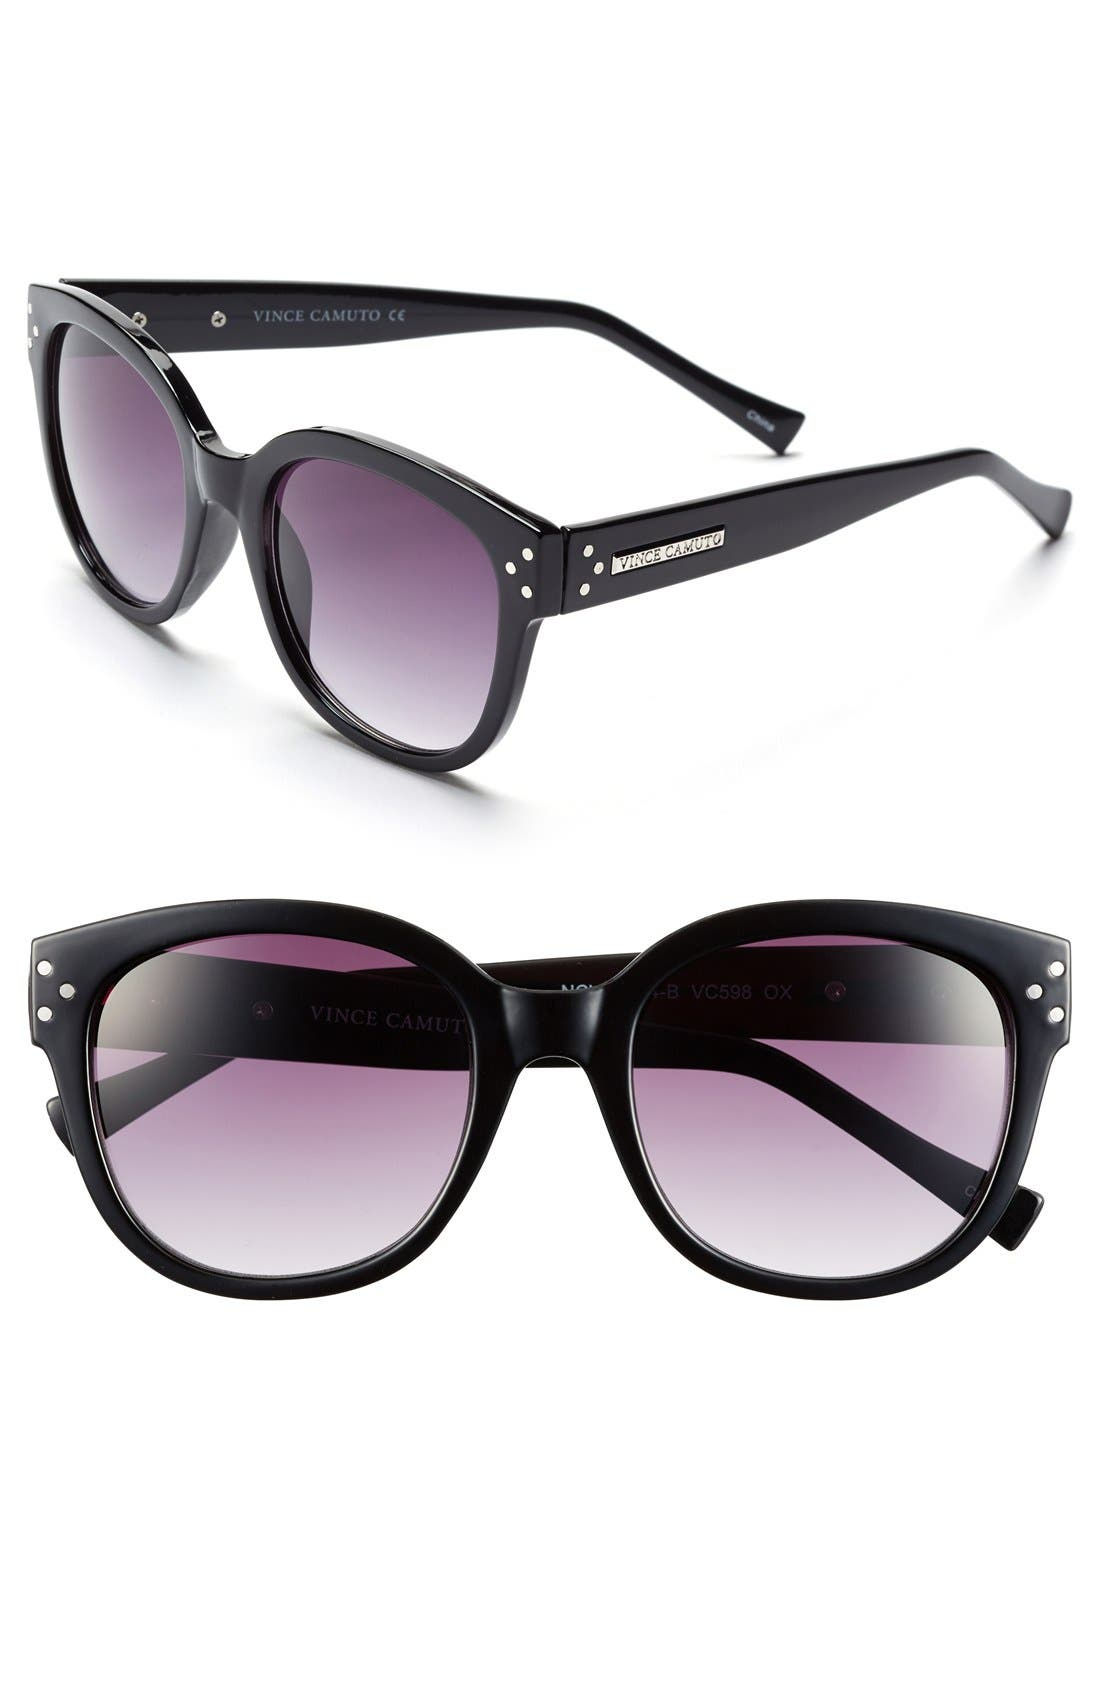 Main Image - Vince Camuto 54mm Retro Sunglasses